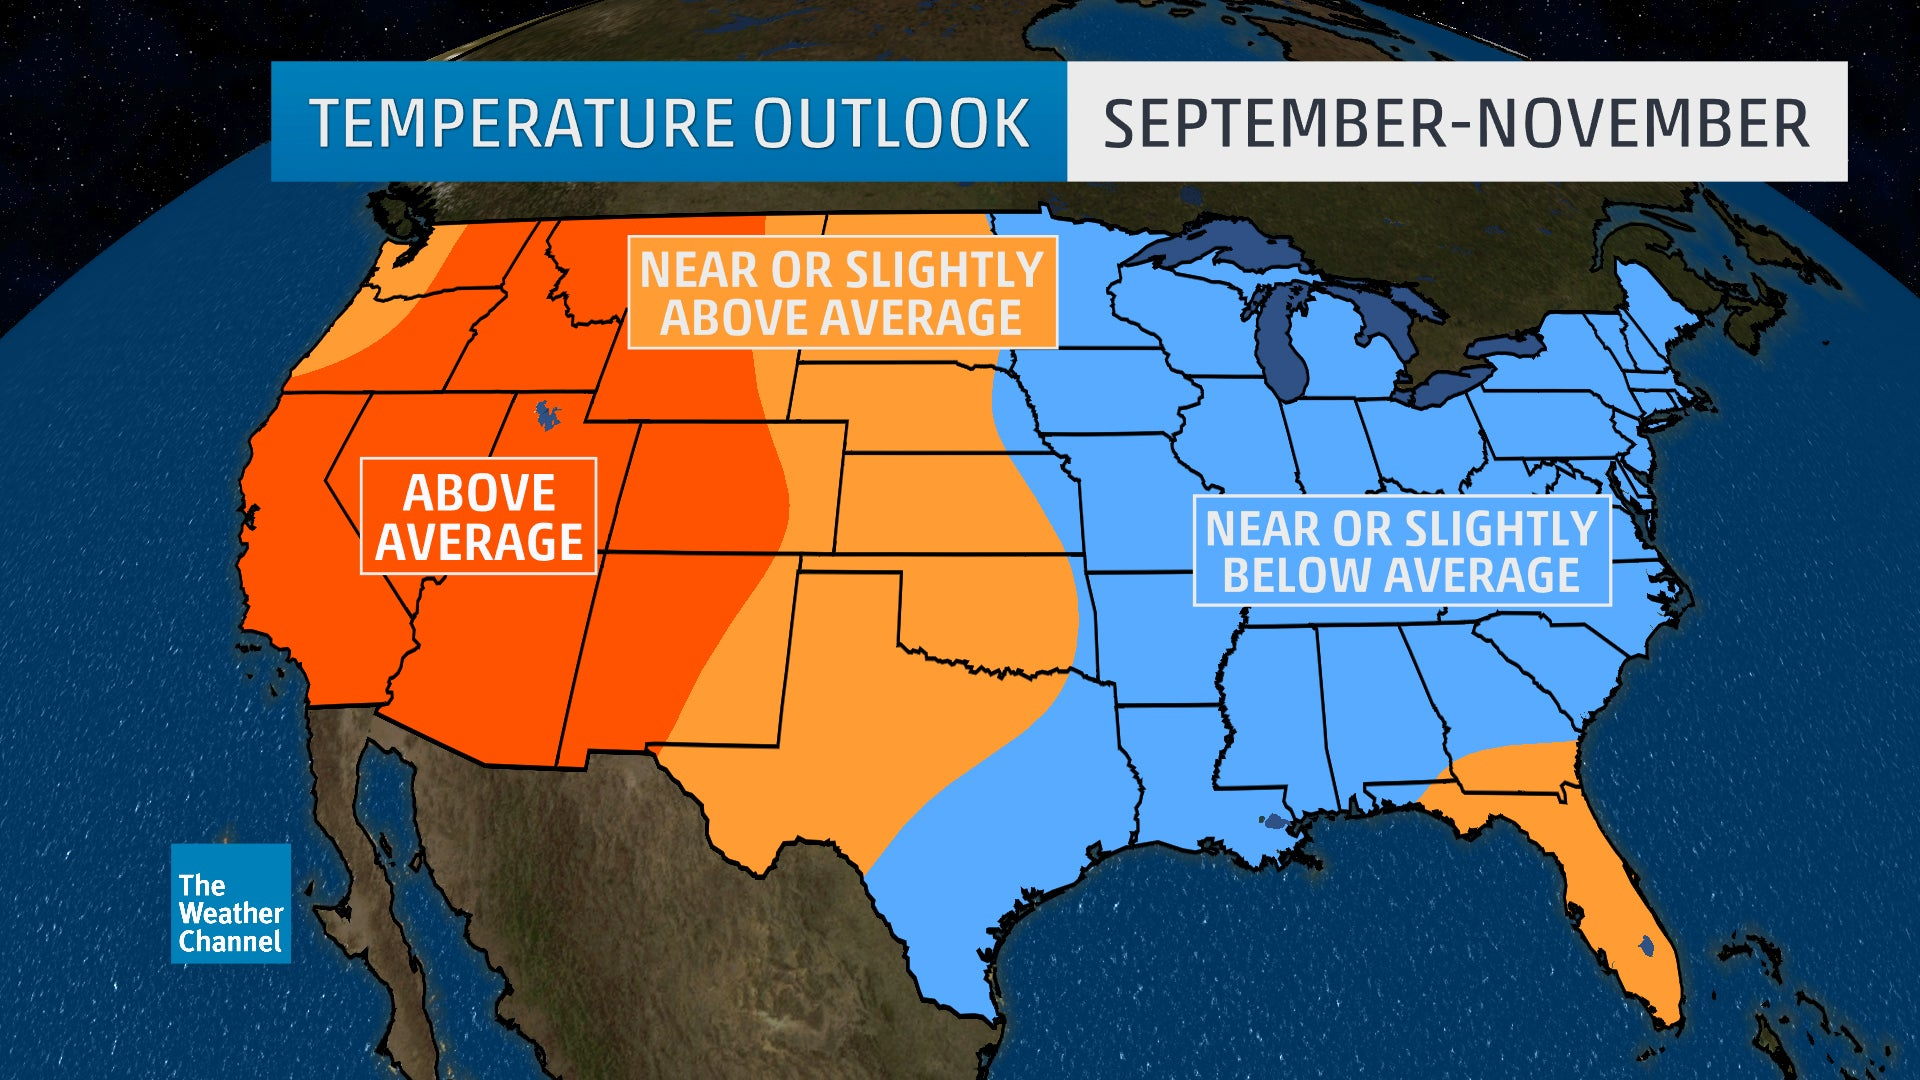 Fall Temperature Outlook West To Remain Warm East To Stay Cool The Weather Channel